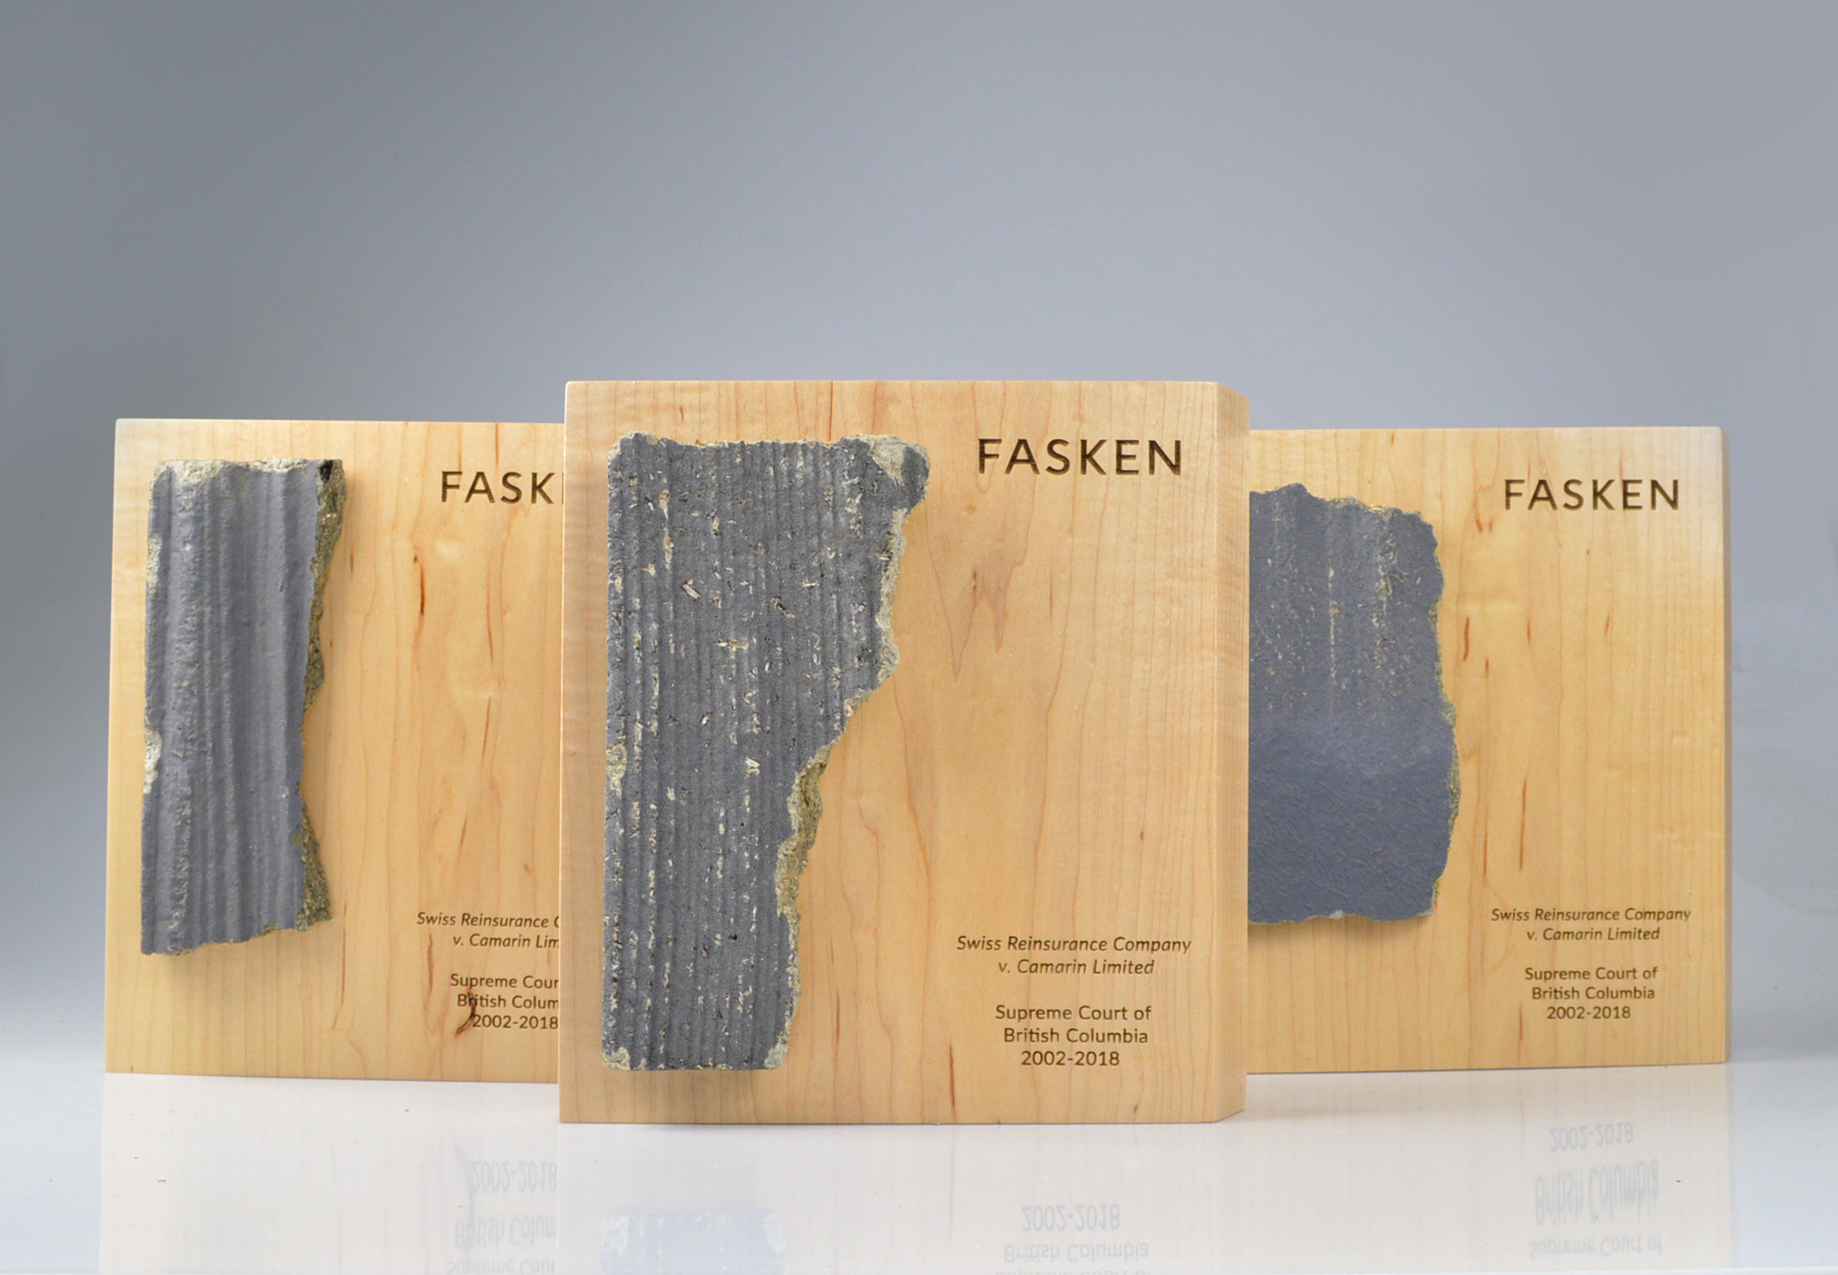 Fasken-neighborhood award - Wide